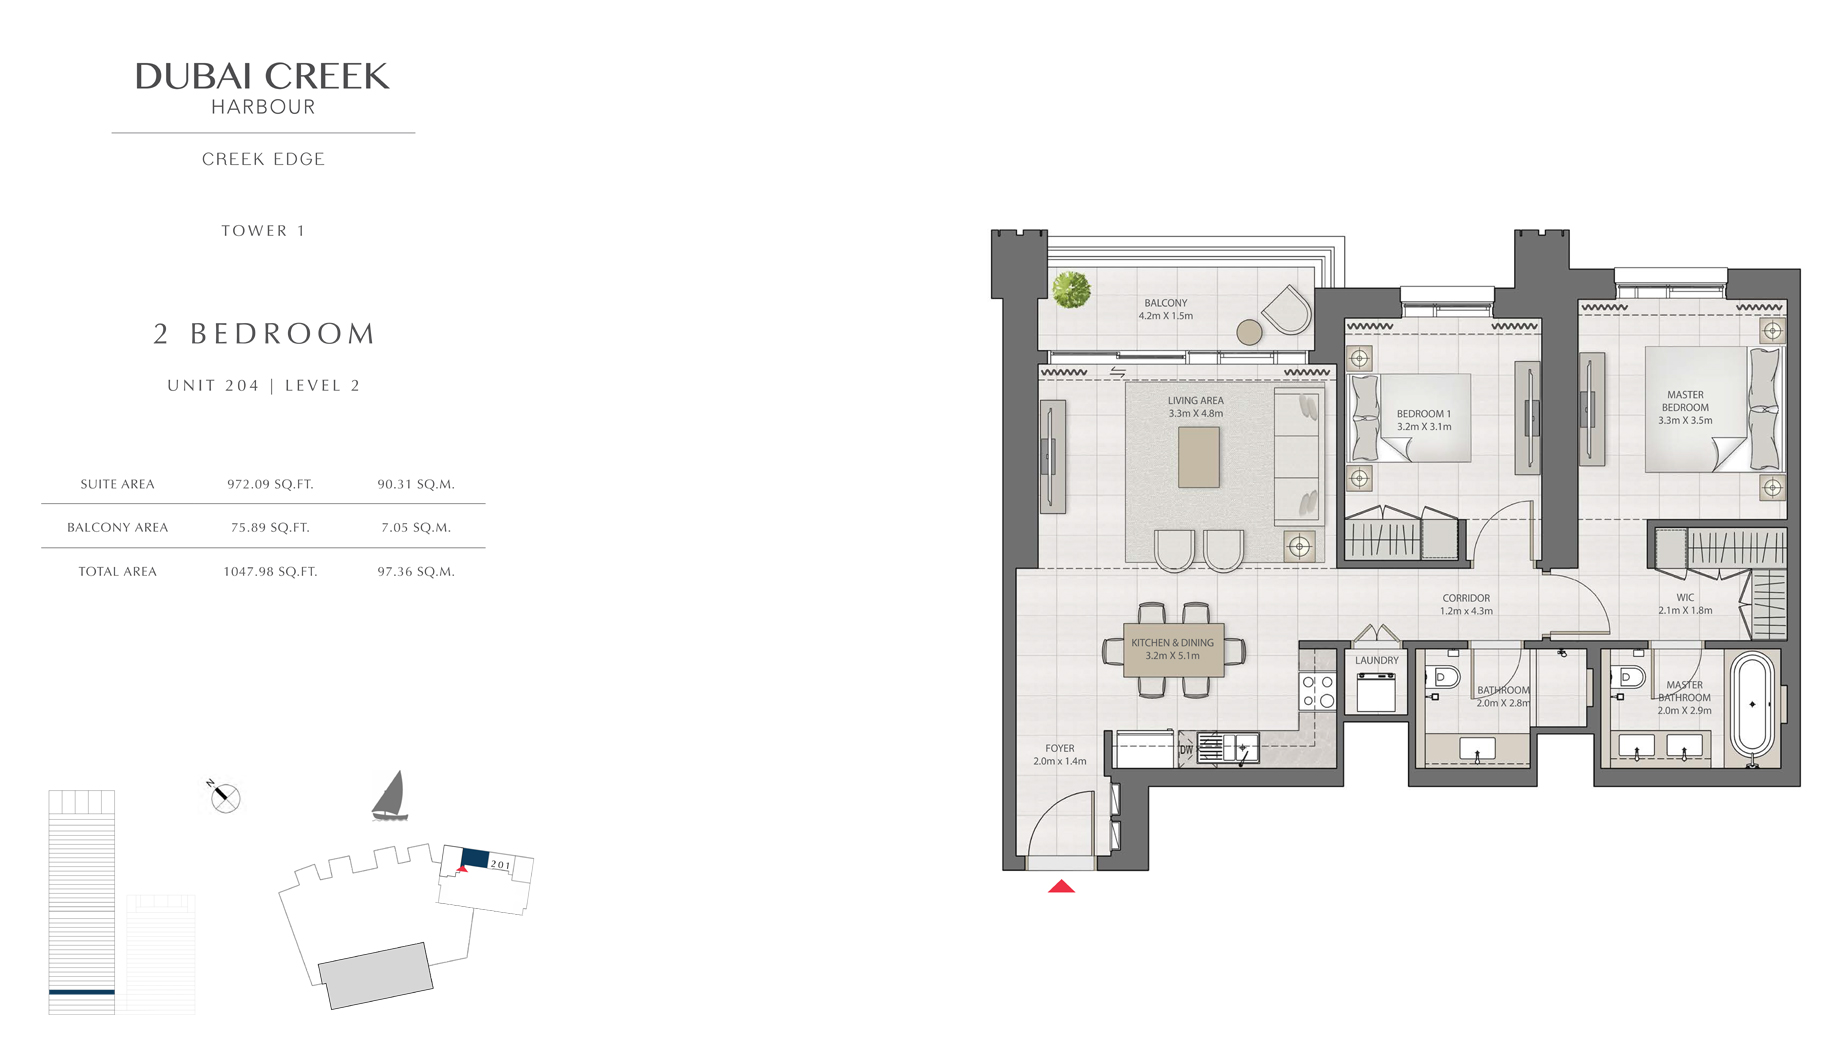 2 Bedroom Tower 1 Unit 204 Level 2 Size 1047 sq.ft